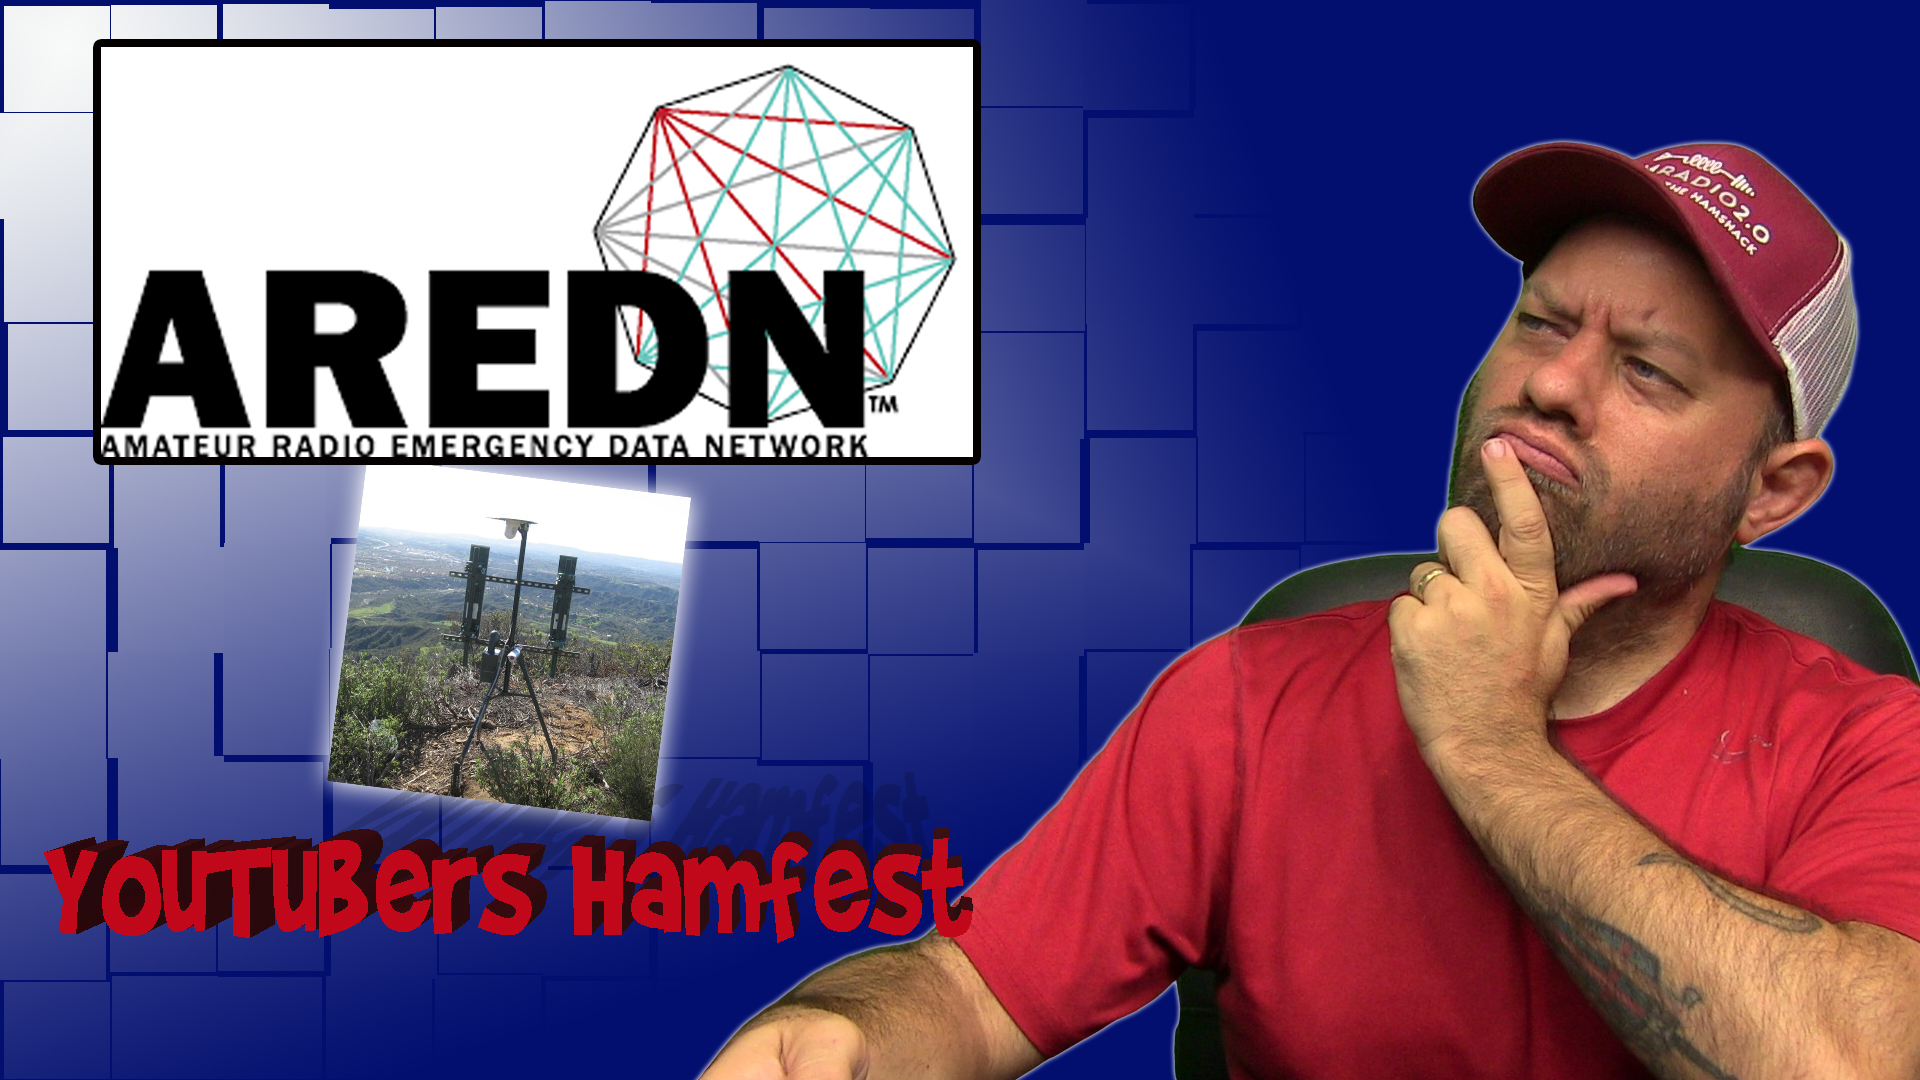 Episode 377: AREDN Mesh Interview with K6AH for the YouTubers Hamfest Prequel